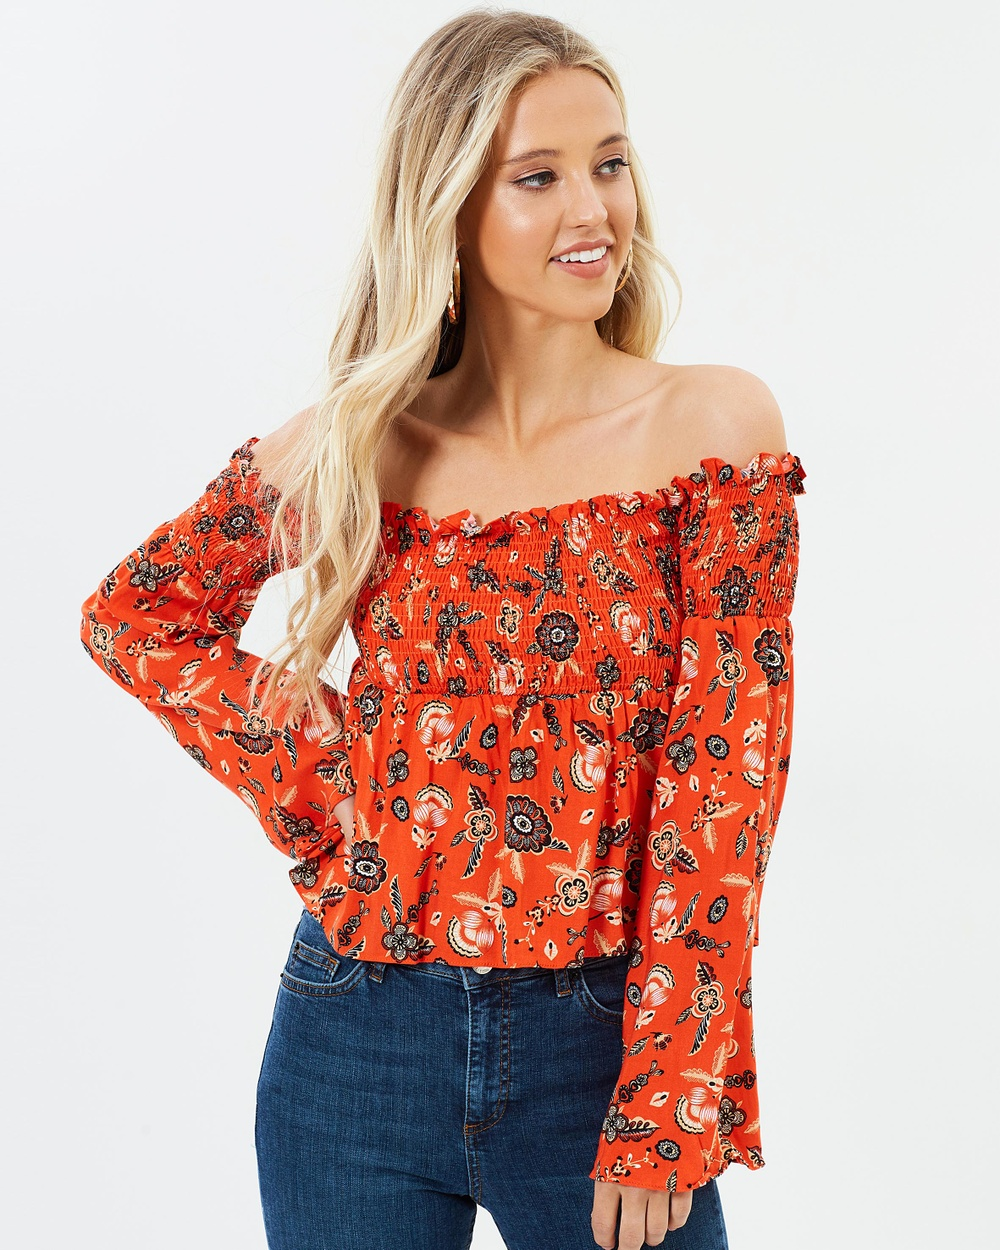 Dazie Russian Doll Top Tops Red Based Floral Russian Doll Top